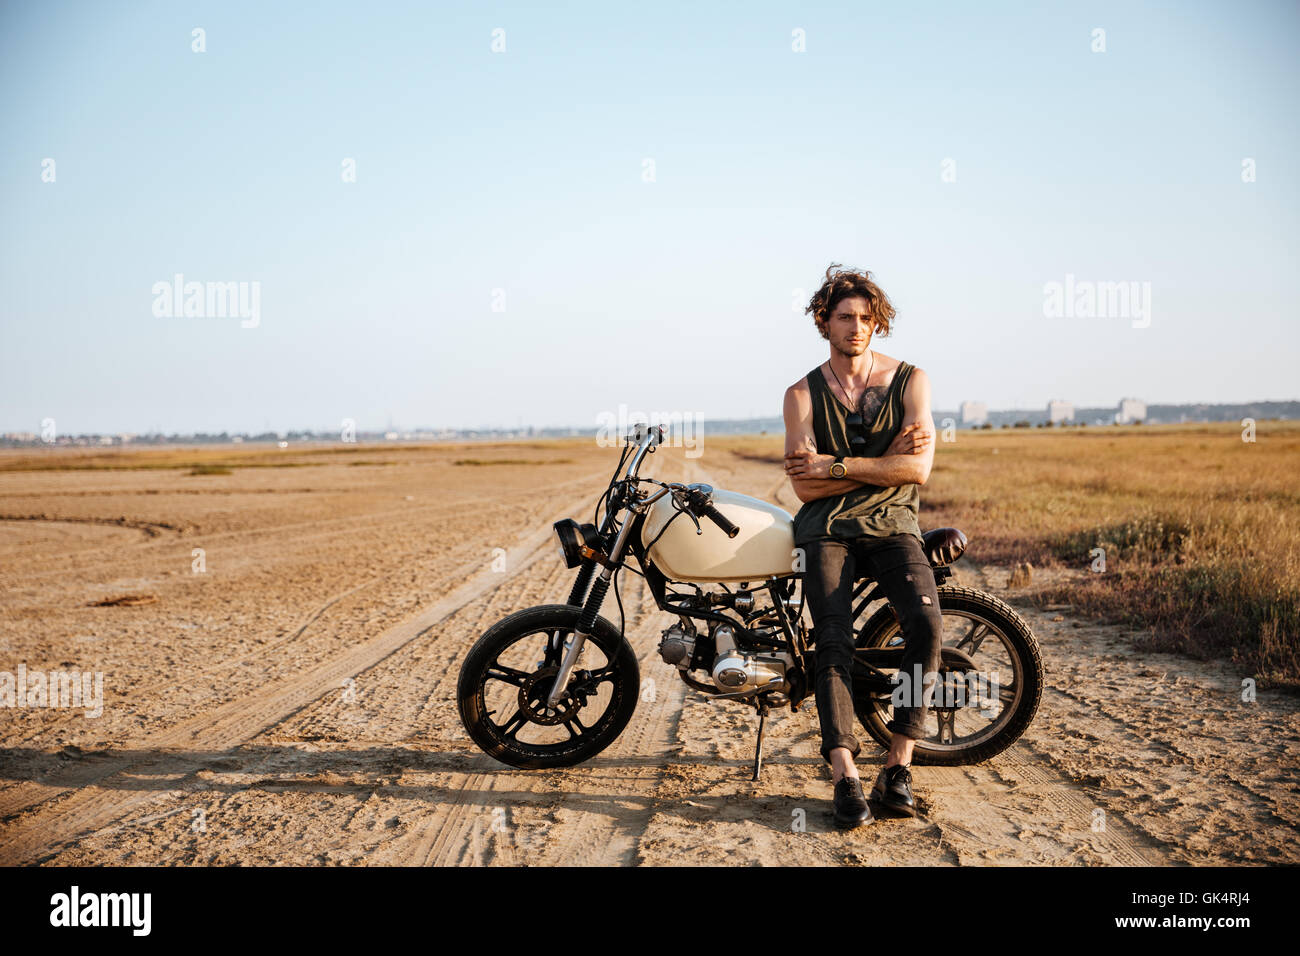 Young brutal man in black leaning on a motorcycle - Stock Image